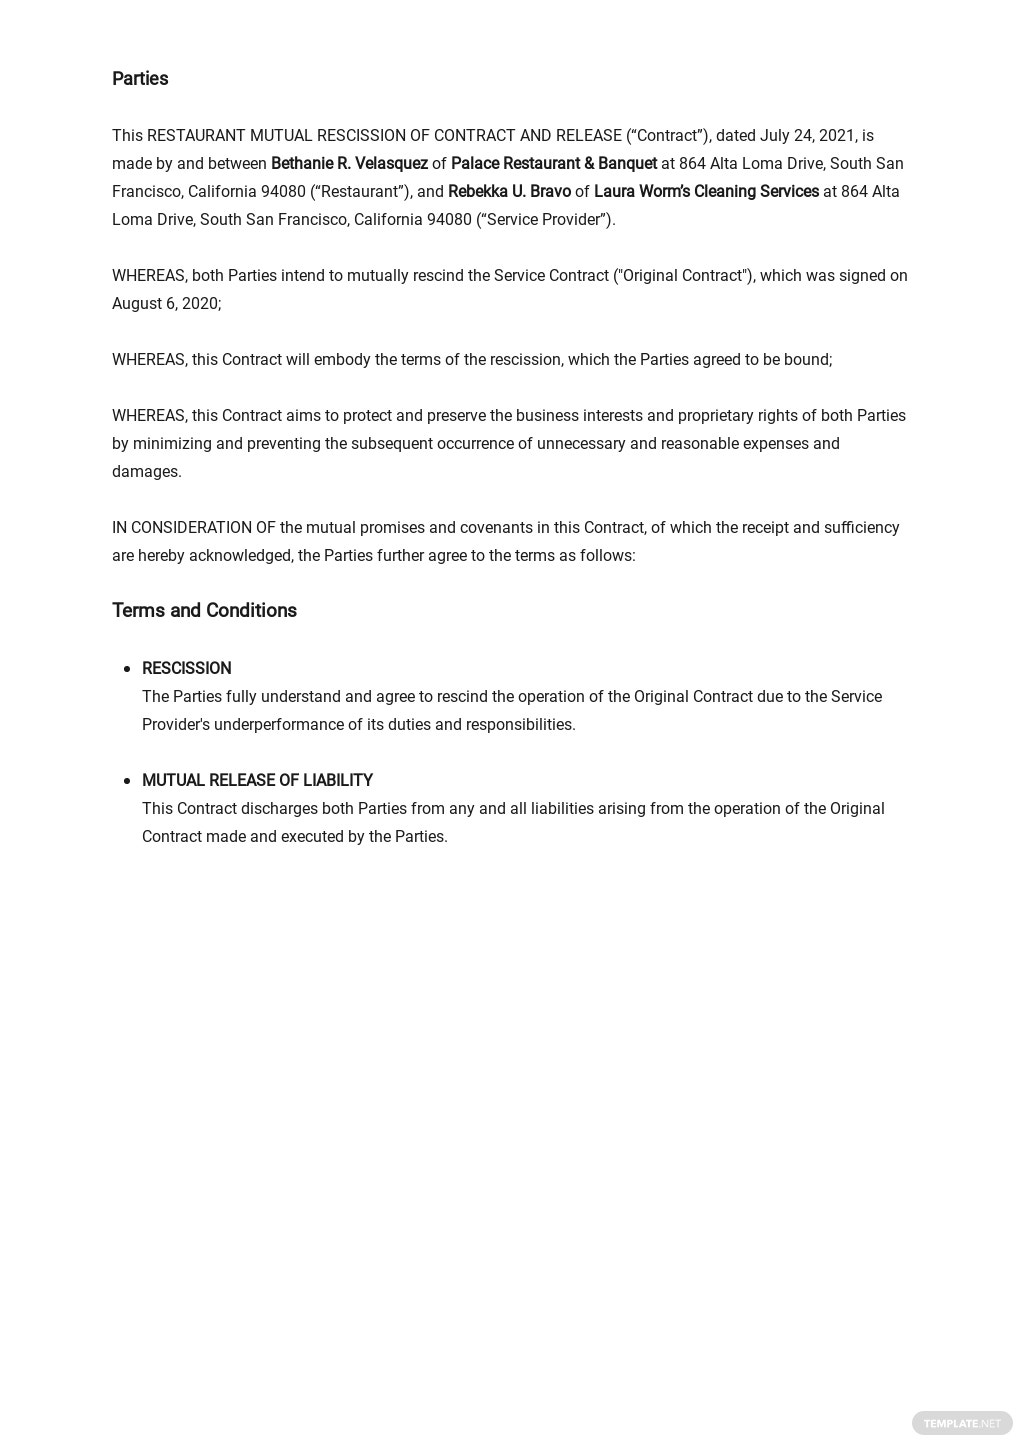 Restaurant Mutual Rescission of Contract and Release Template 1.jpe